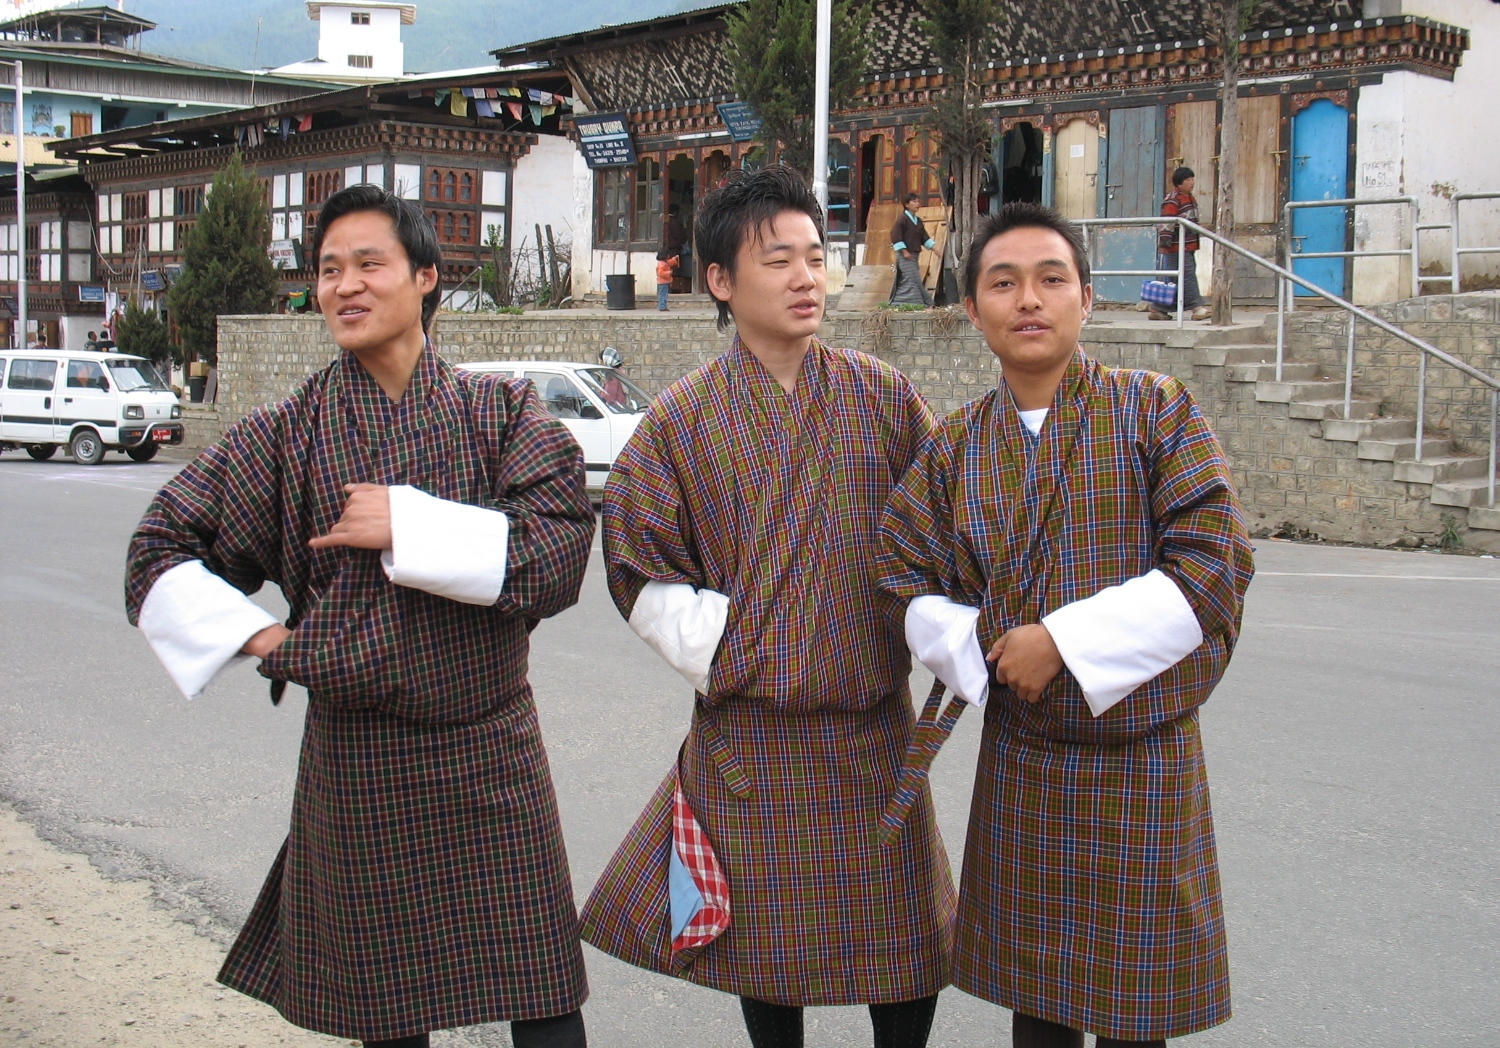 bhutanese democracy Then there is gross national happiness, the overarching political philosophy that seeks to balance material progress with spiritual well-being.